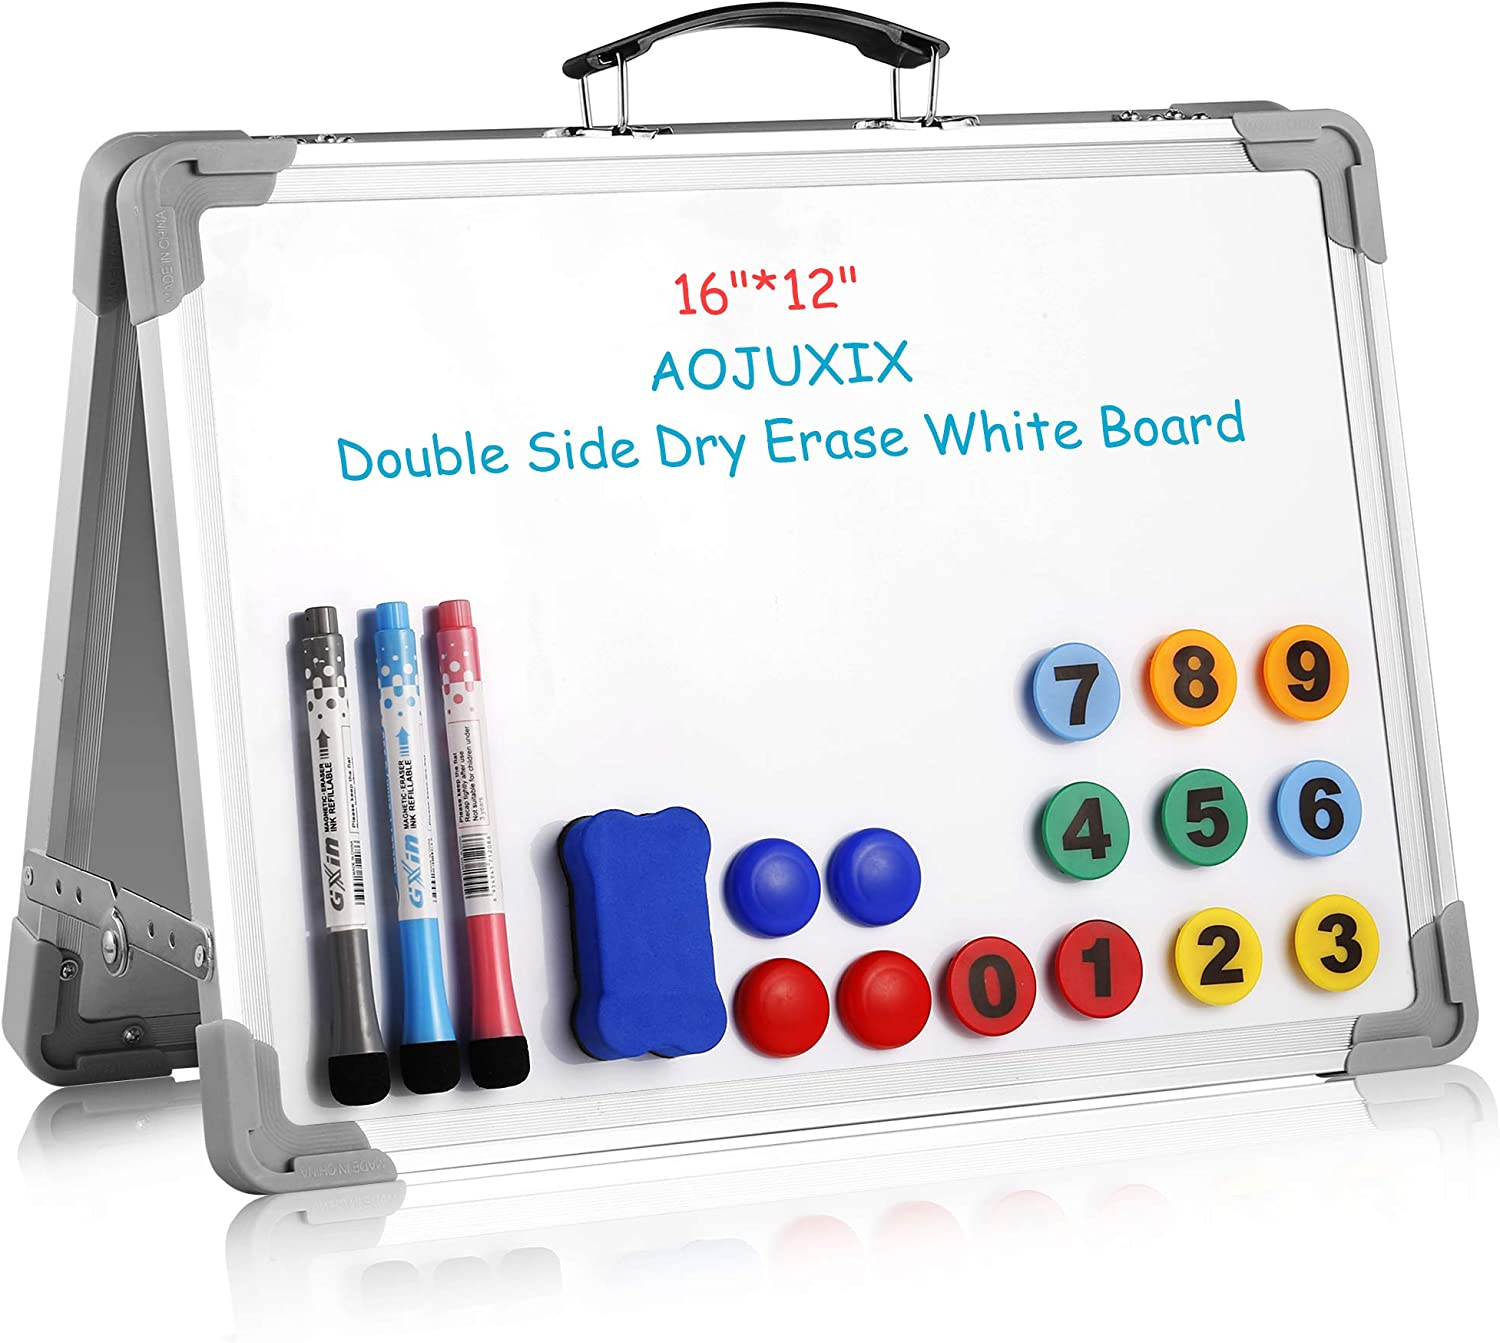 Aojuxix Small Dry Erase White Board Ranking TOP11 Side Special Campaign M Double Desk Portable